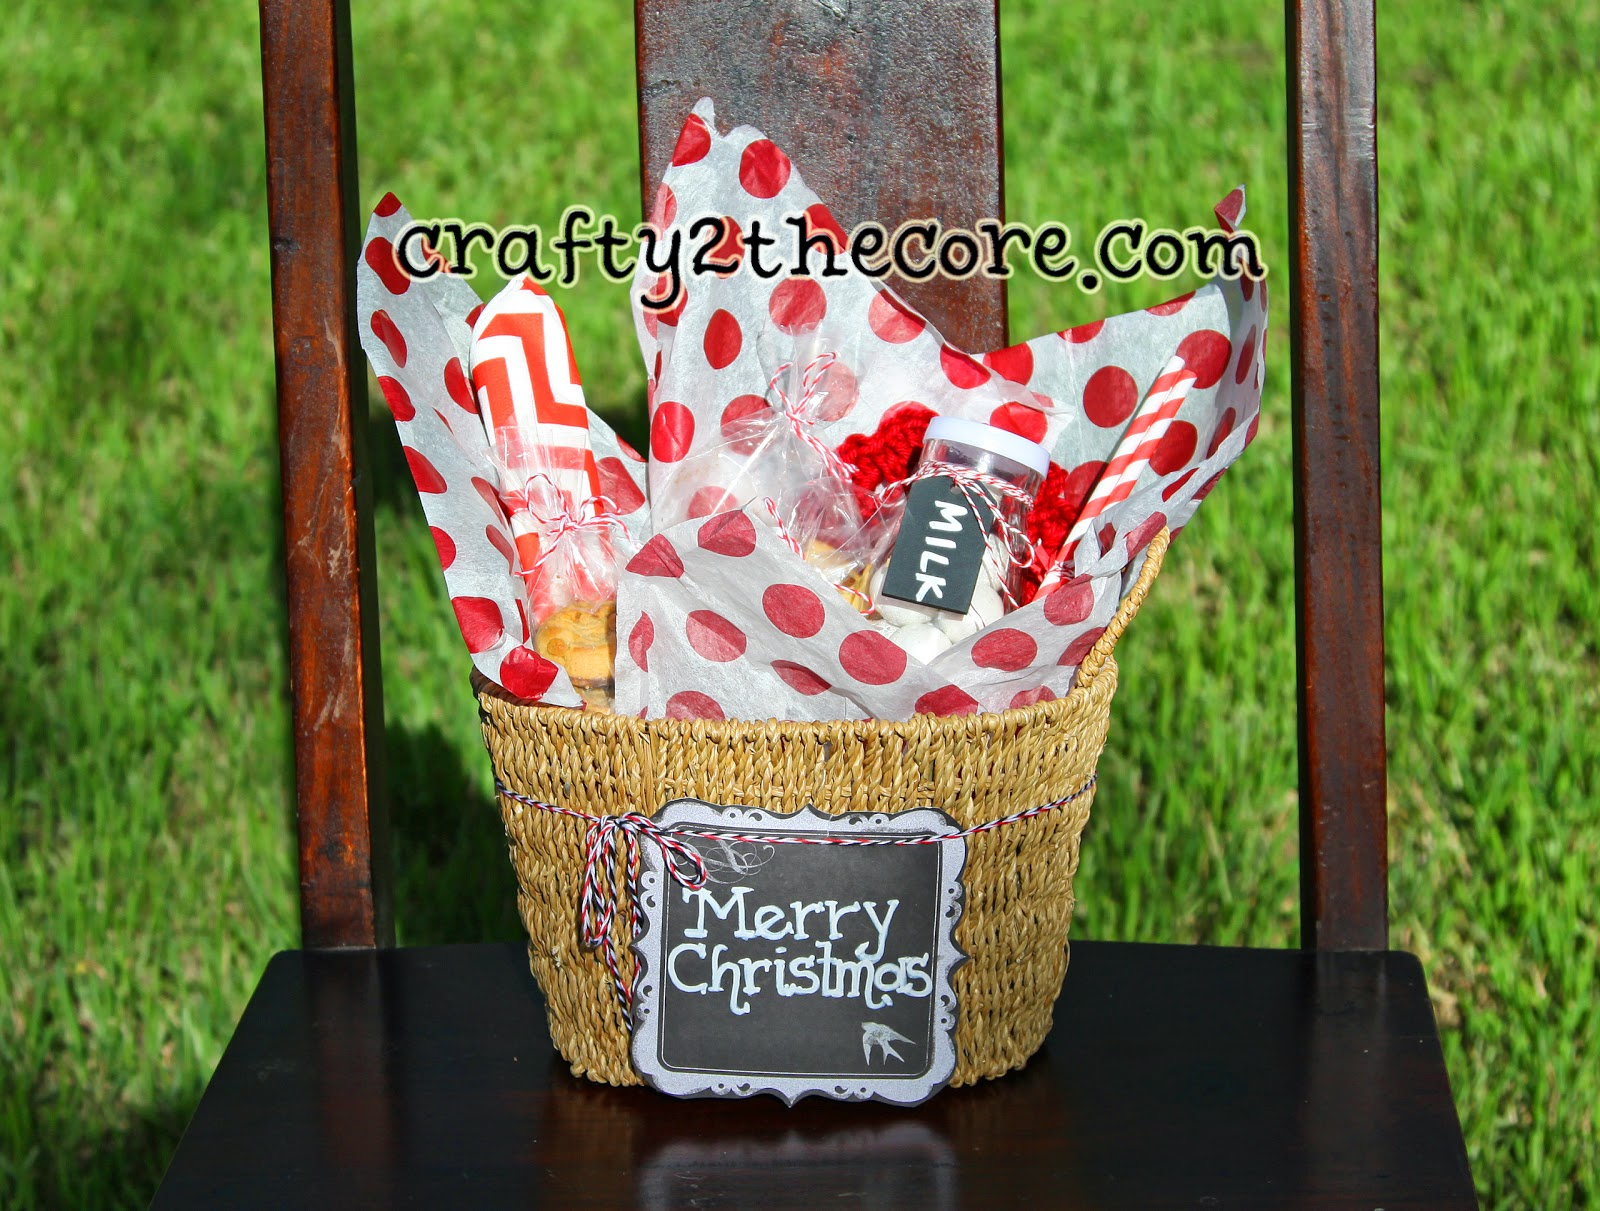 Gift Idea Basket with Cookies, milk jar, straws, napkin, candy, crochet coaster.